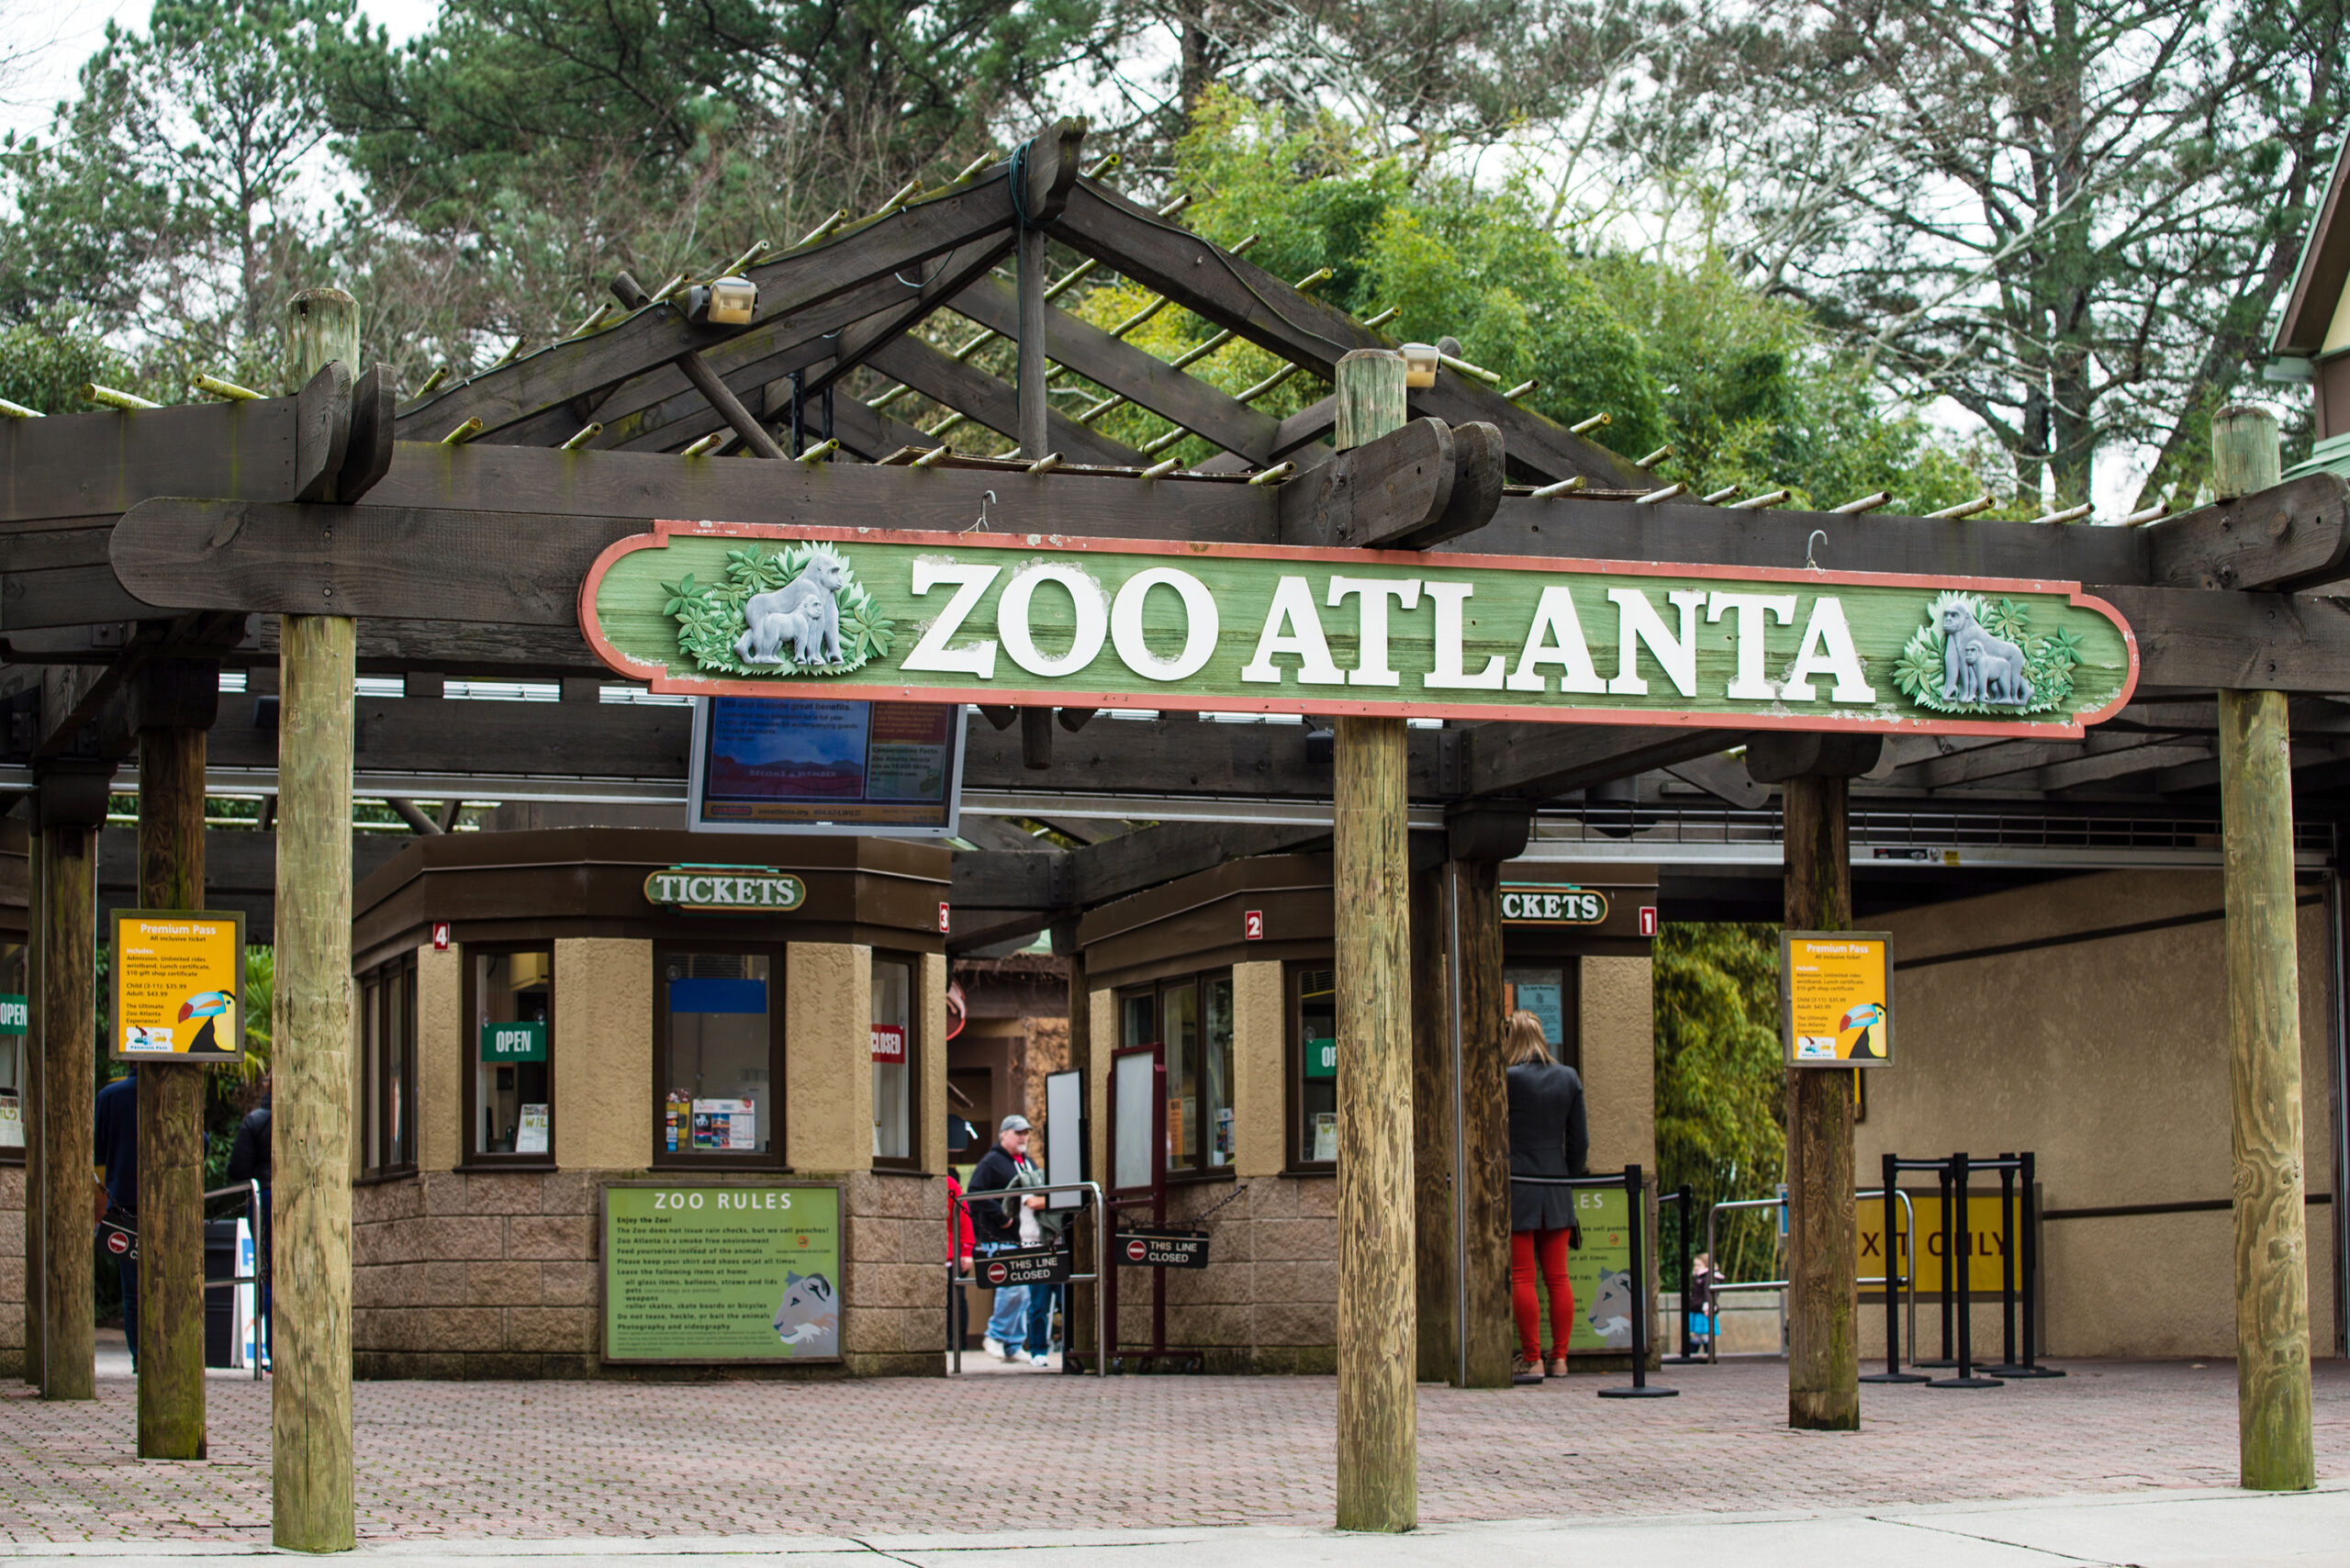 Entrance to Zoo Atlanta. The zoo houses more than 1,500 animals and welcomed roughly 866,000 visitors a year.